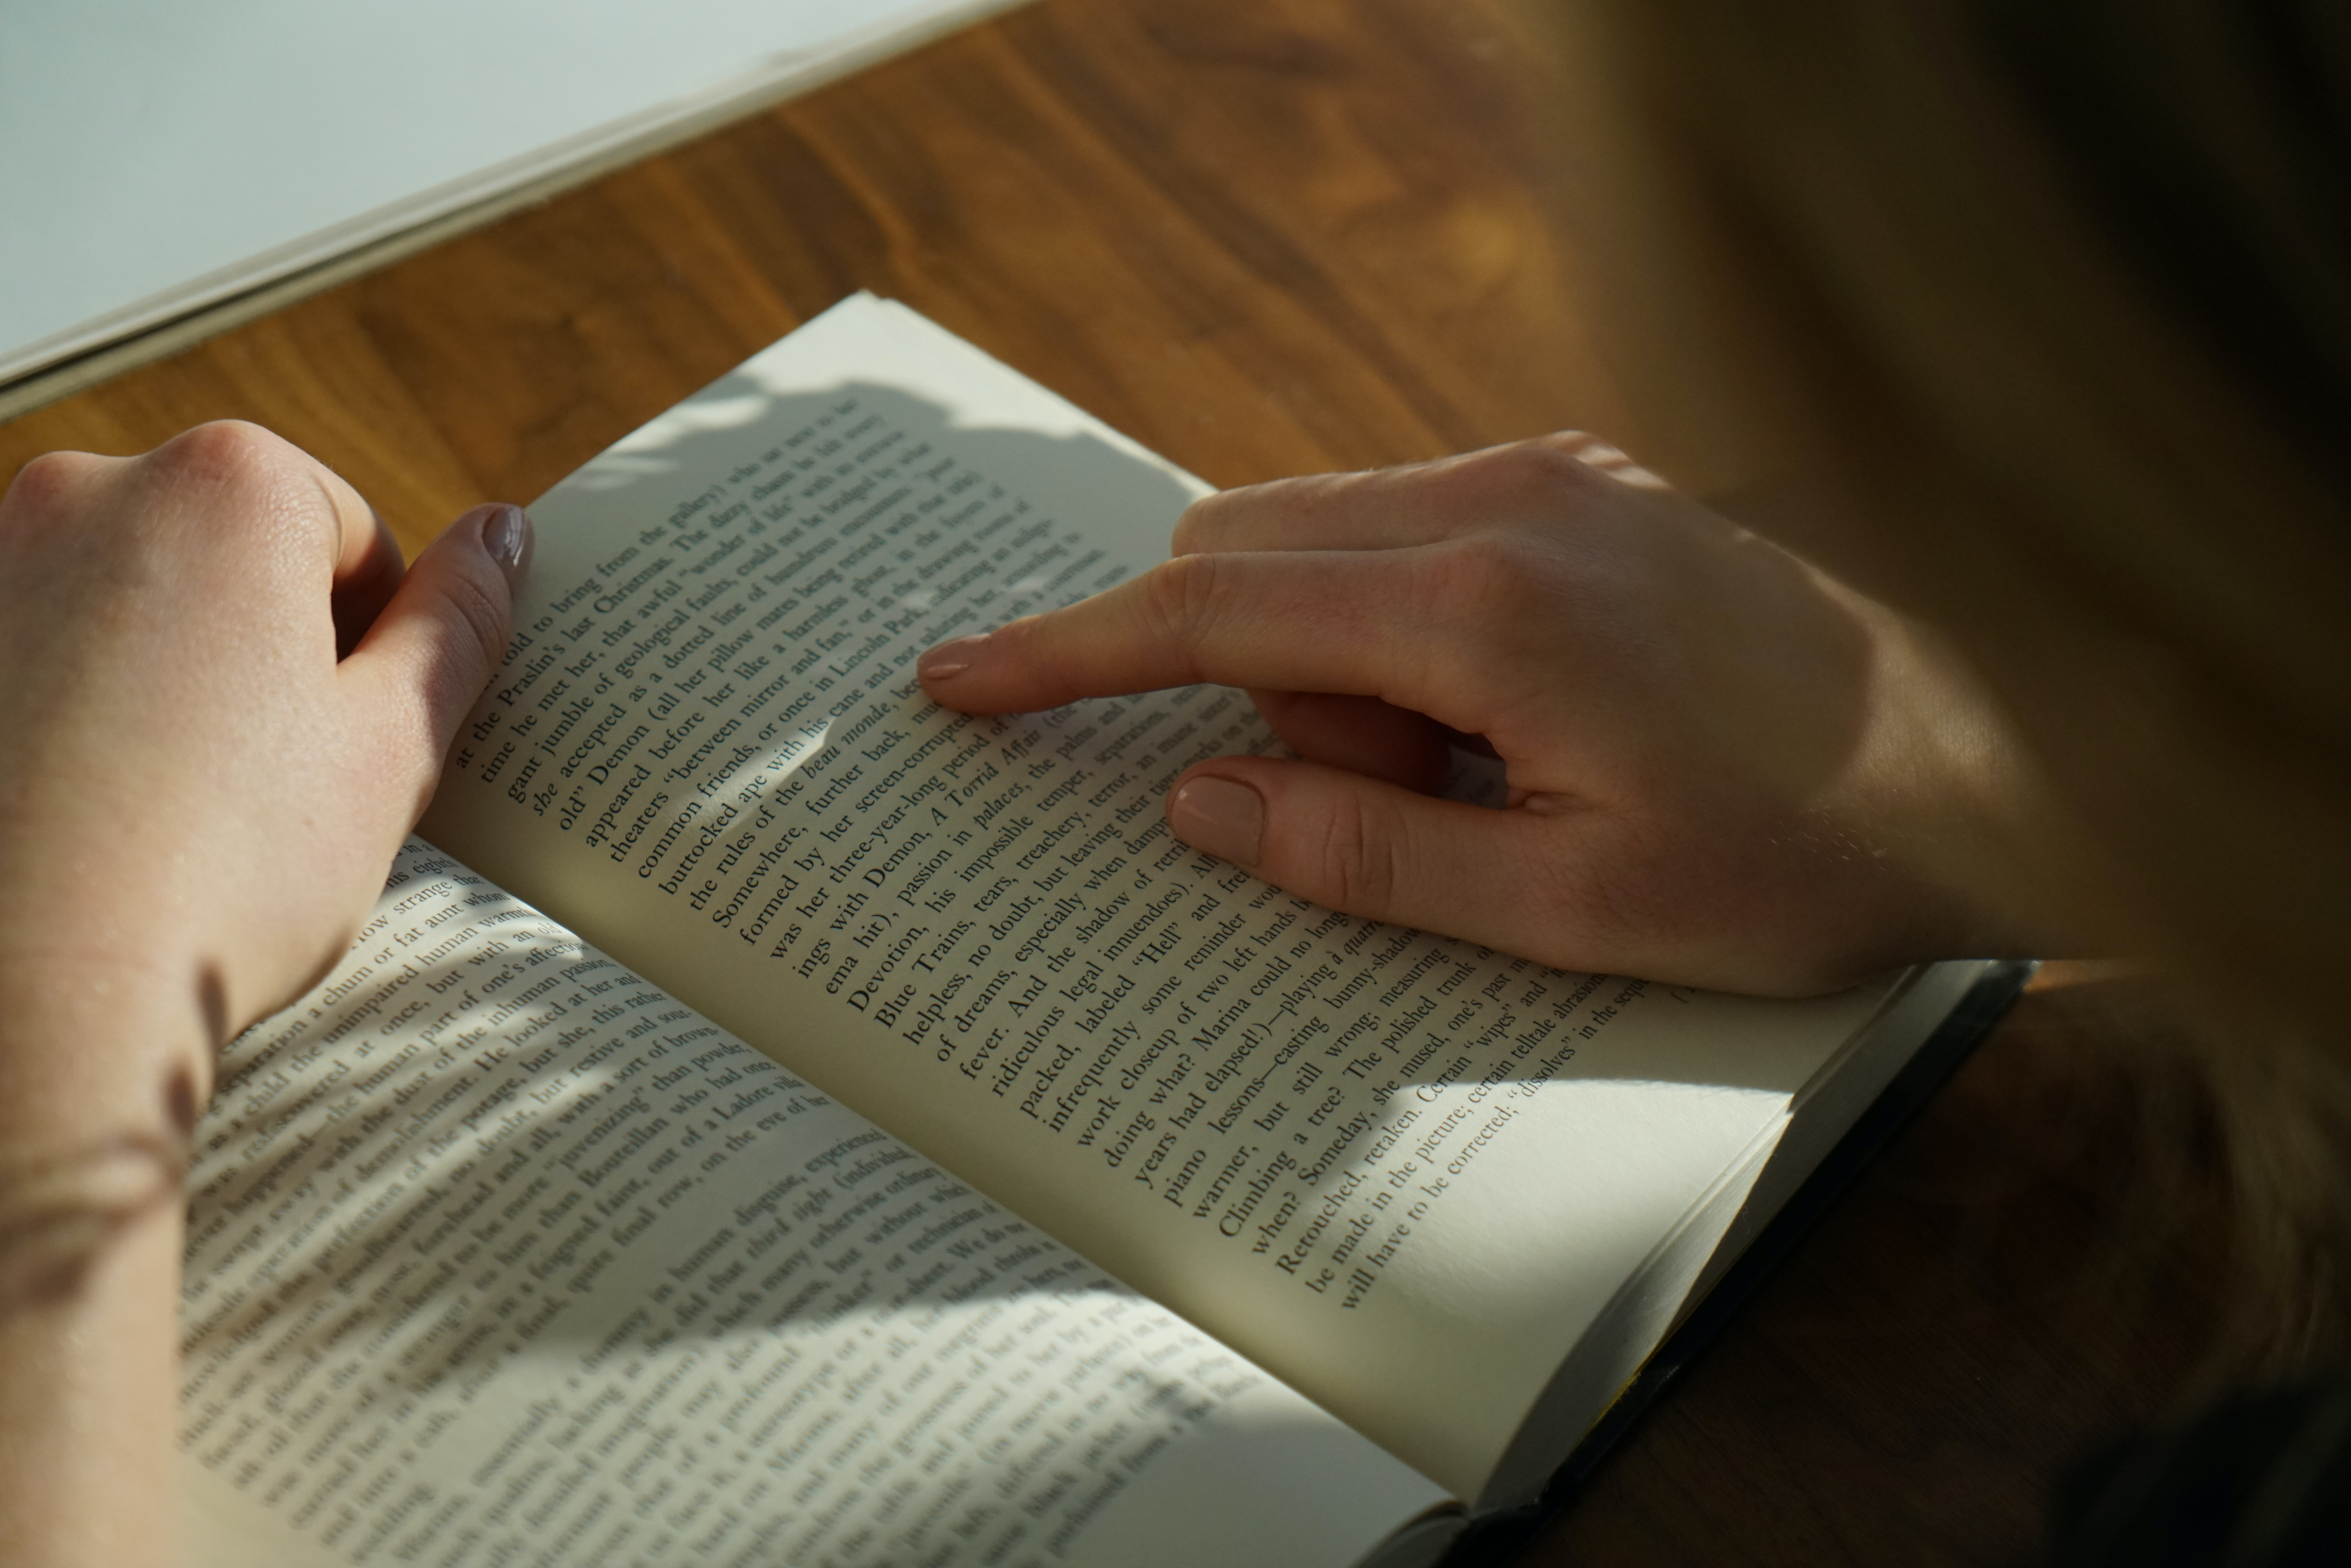 Person reading a book uses their finger to keep their page